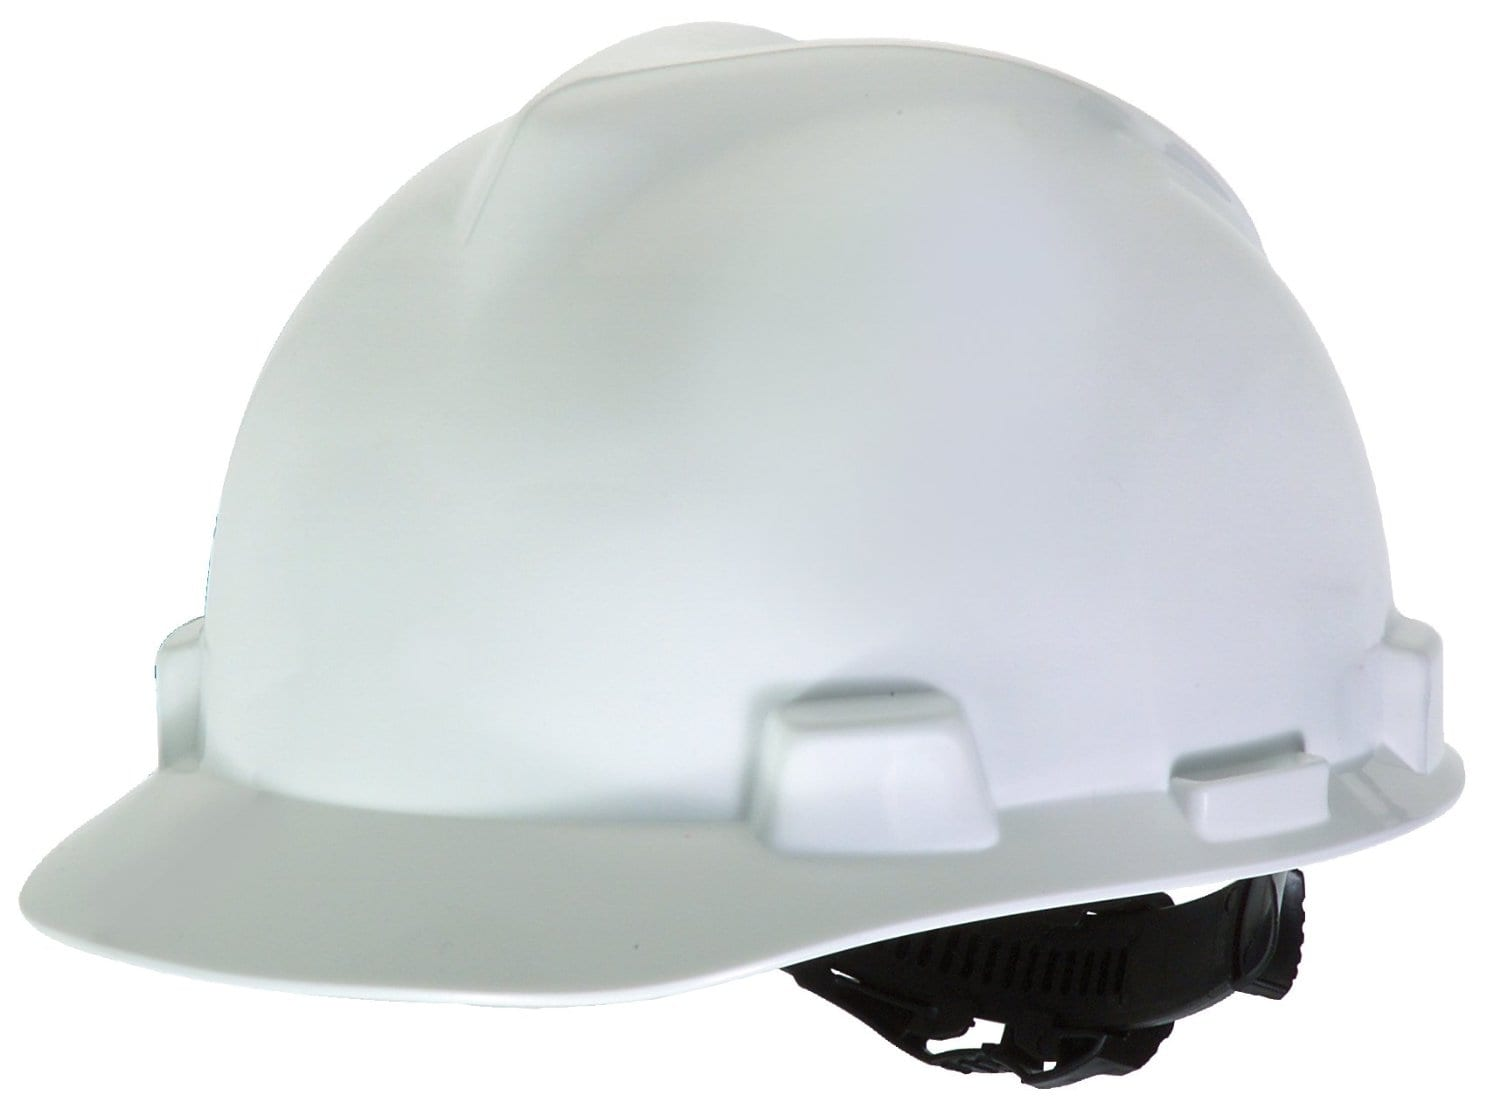 Msa Safety Helmet 226000 Newcastle Workwear Specialists